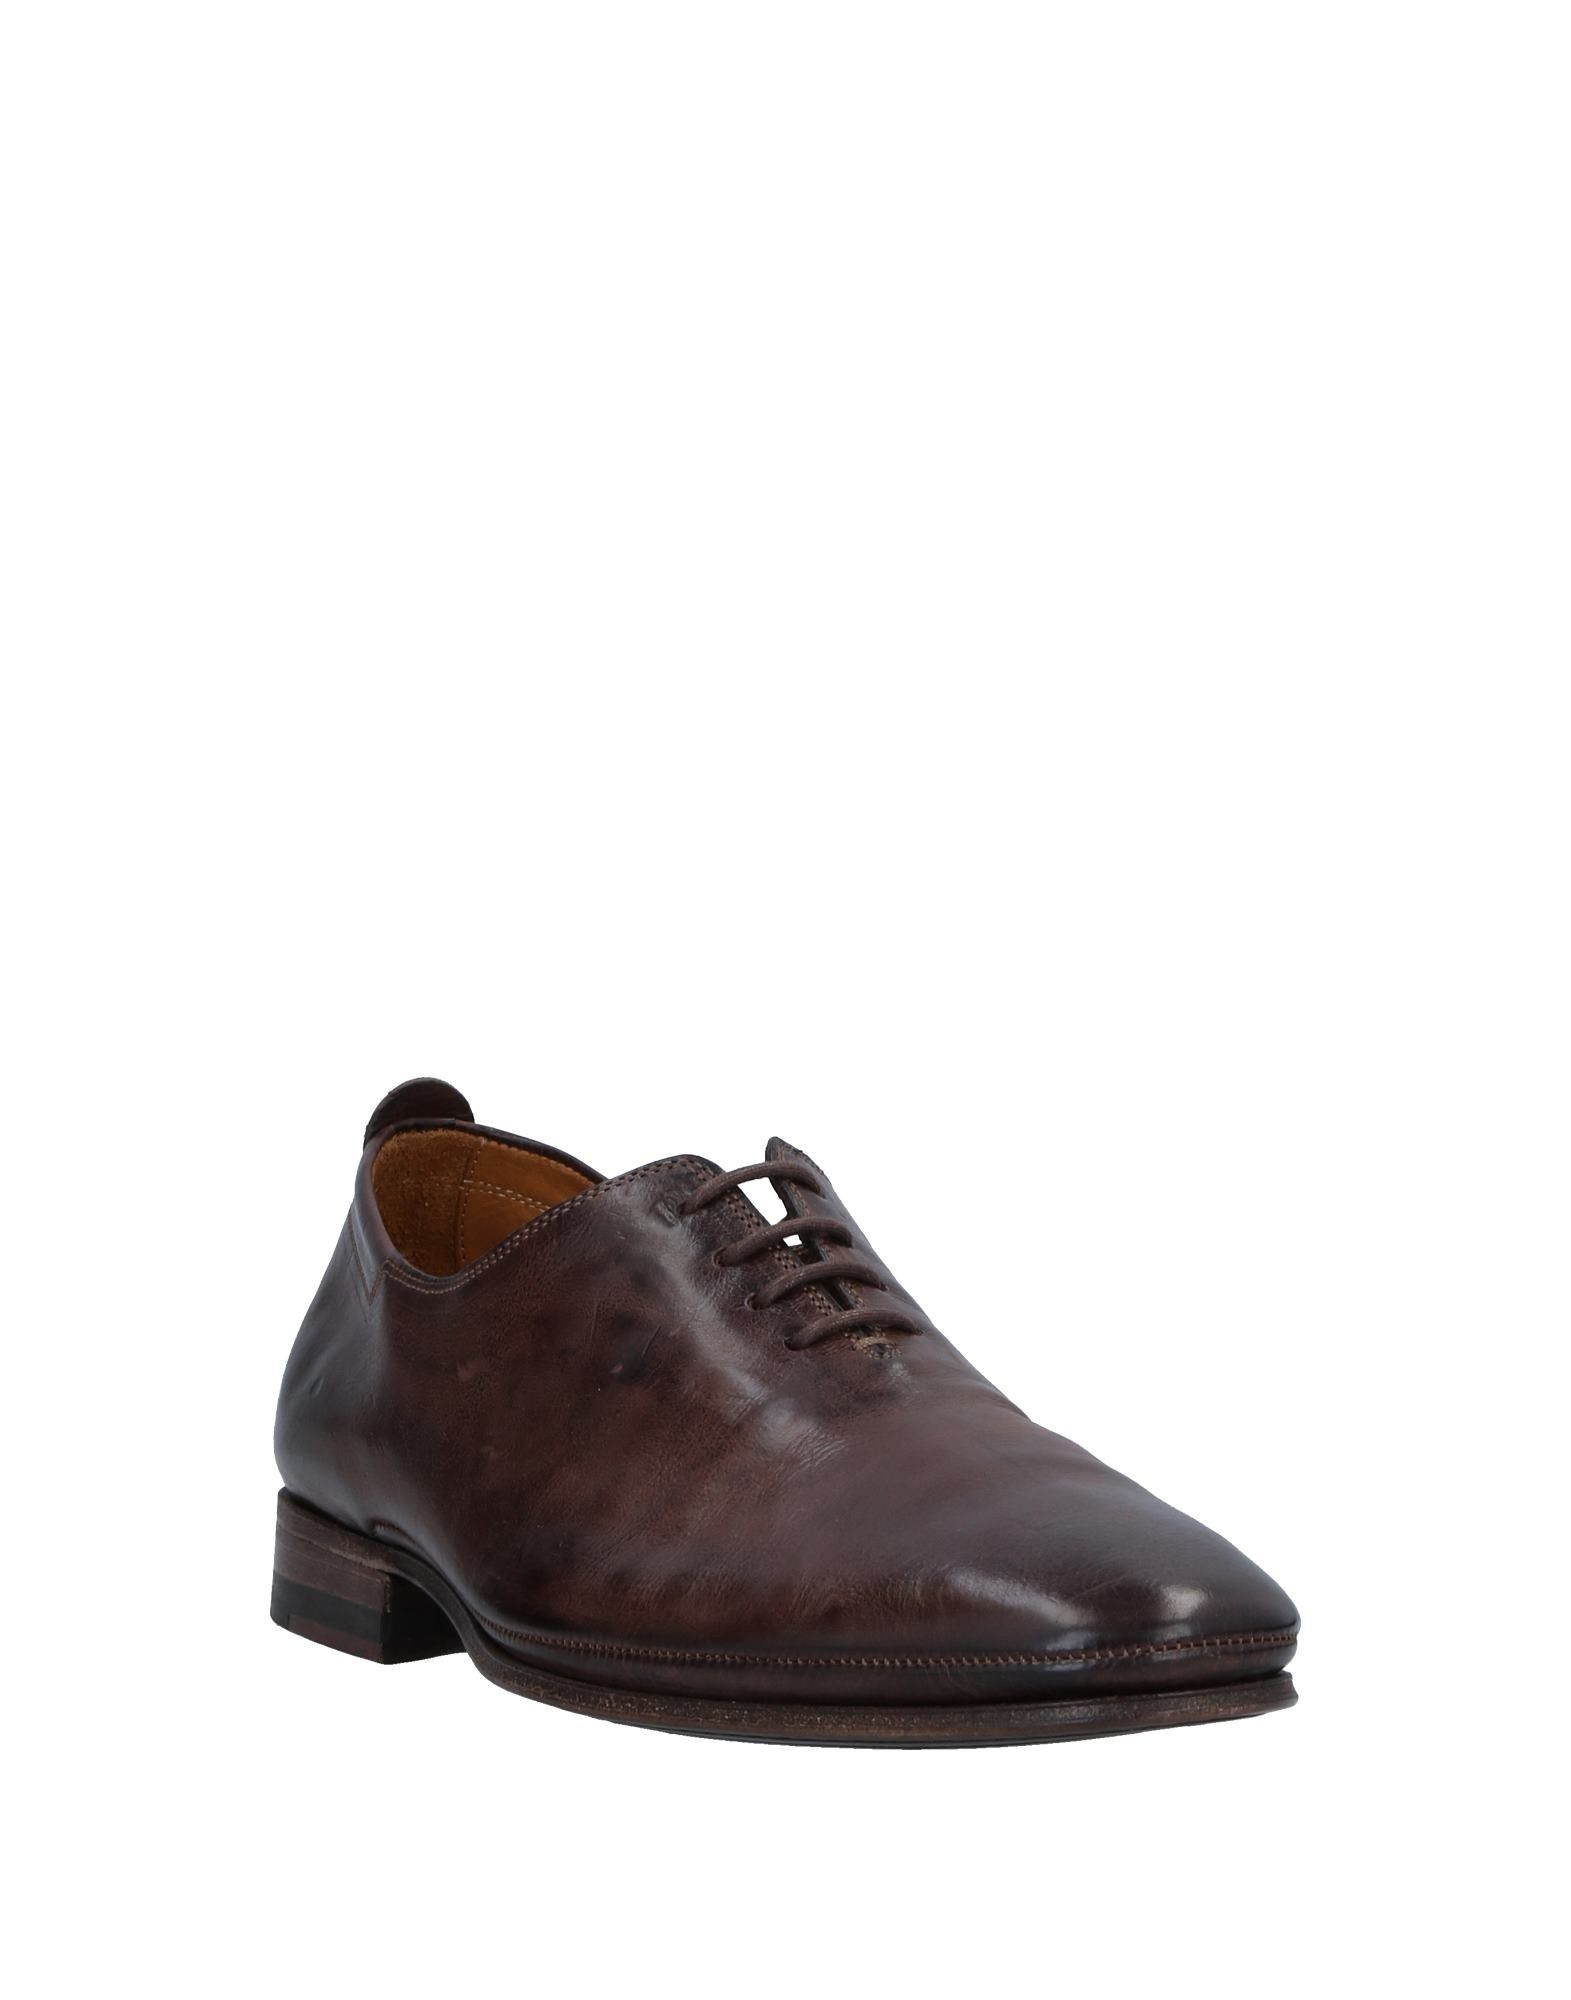 Stringate N.D.C. Made By Hand Uomo - 11526057TB